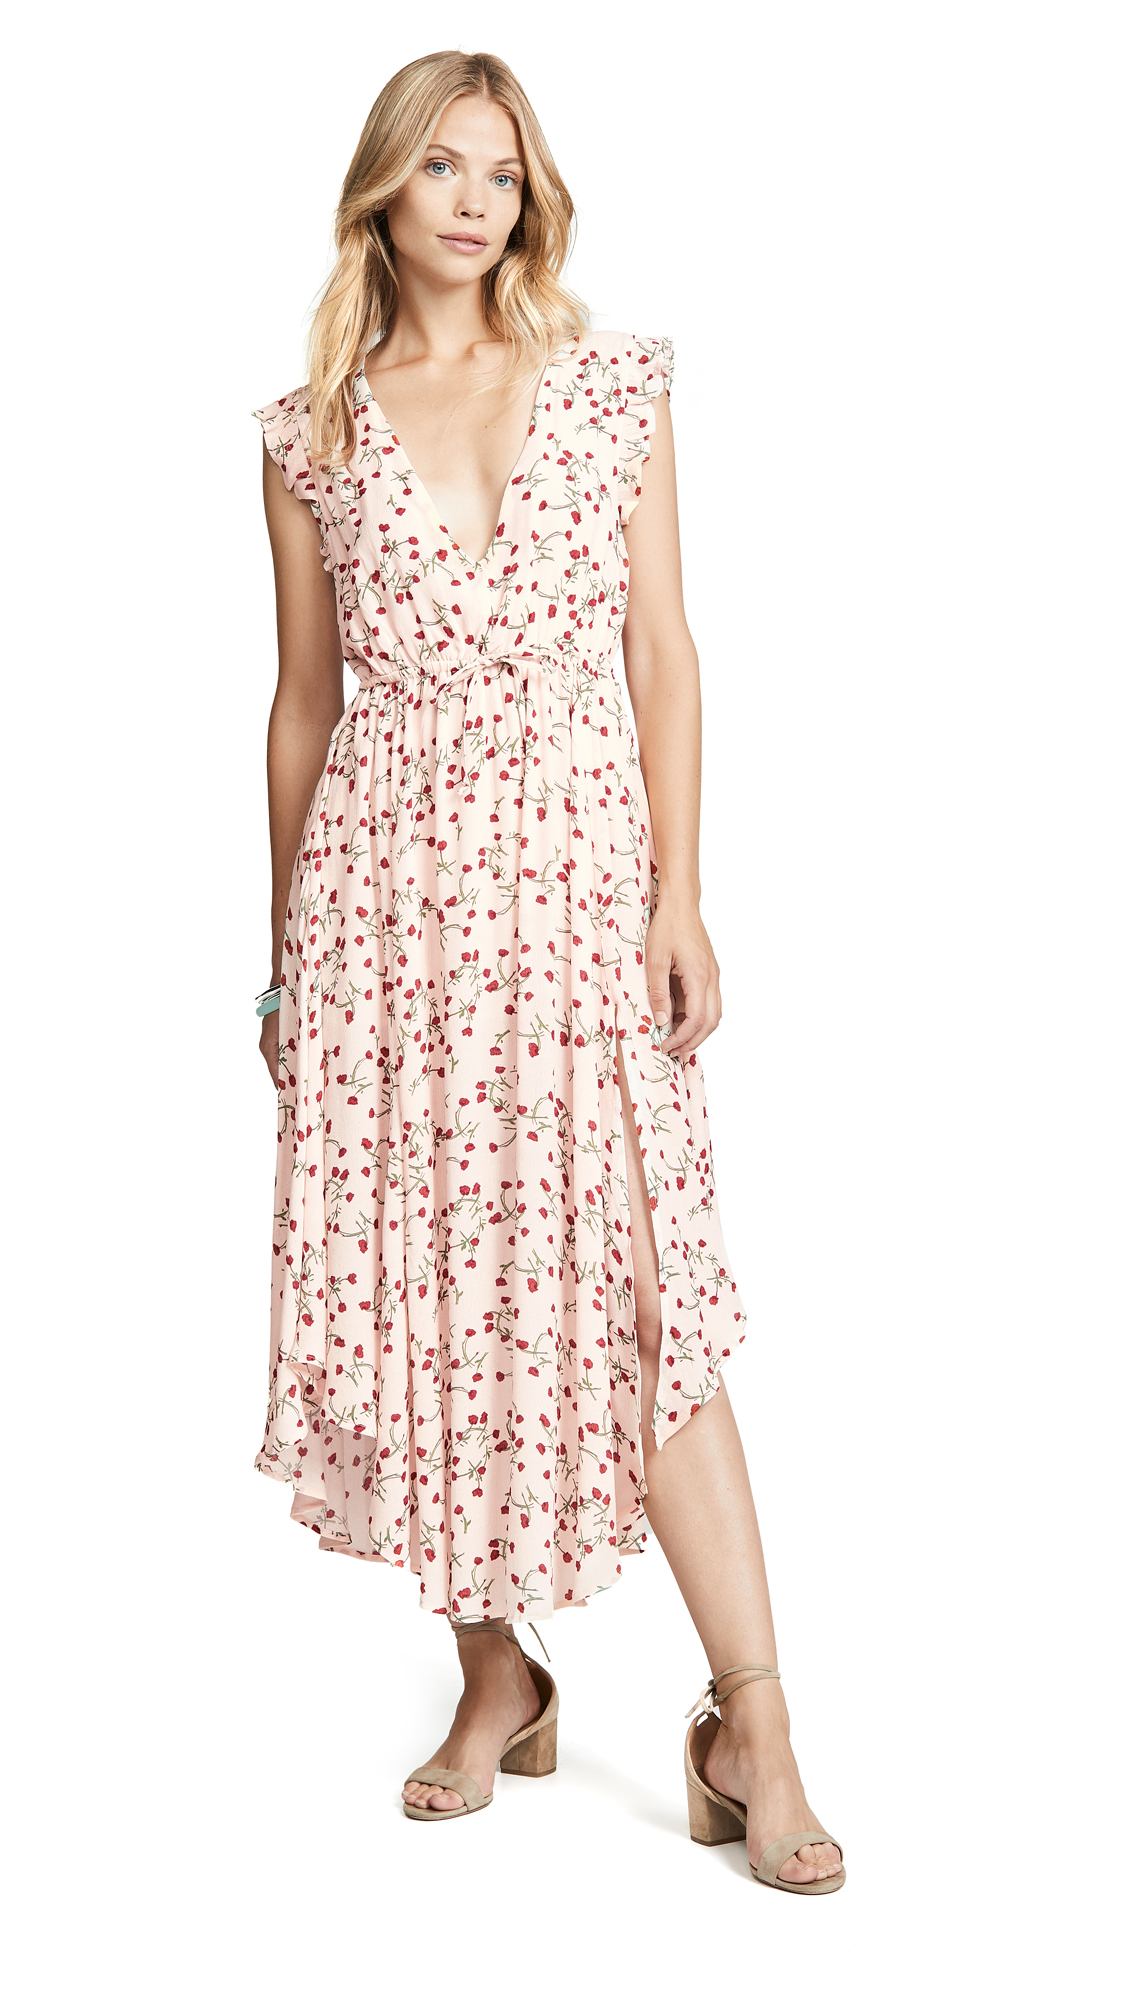 Rahi Sweet Love Bella Dress - Sweet Love Print